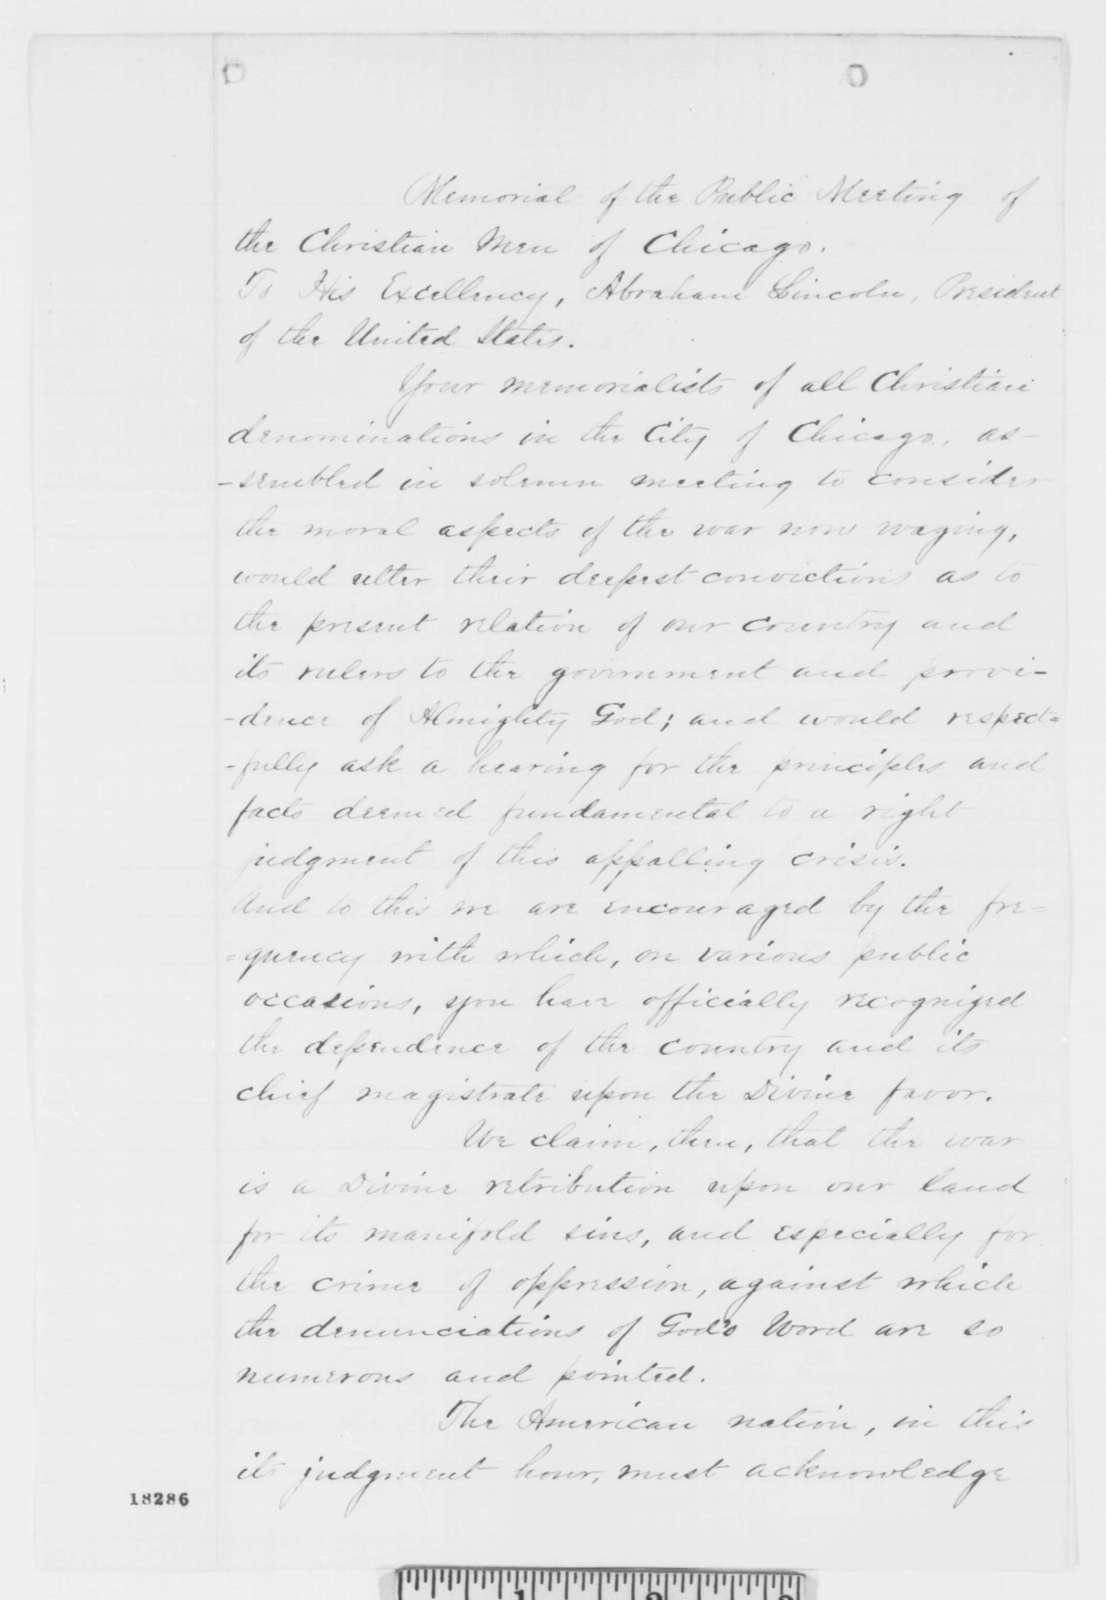 Chicago Citizens to Abraham Lincoln, Monday, September 08, 1862  (Memorial urging emancipation)